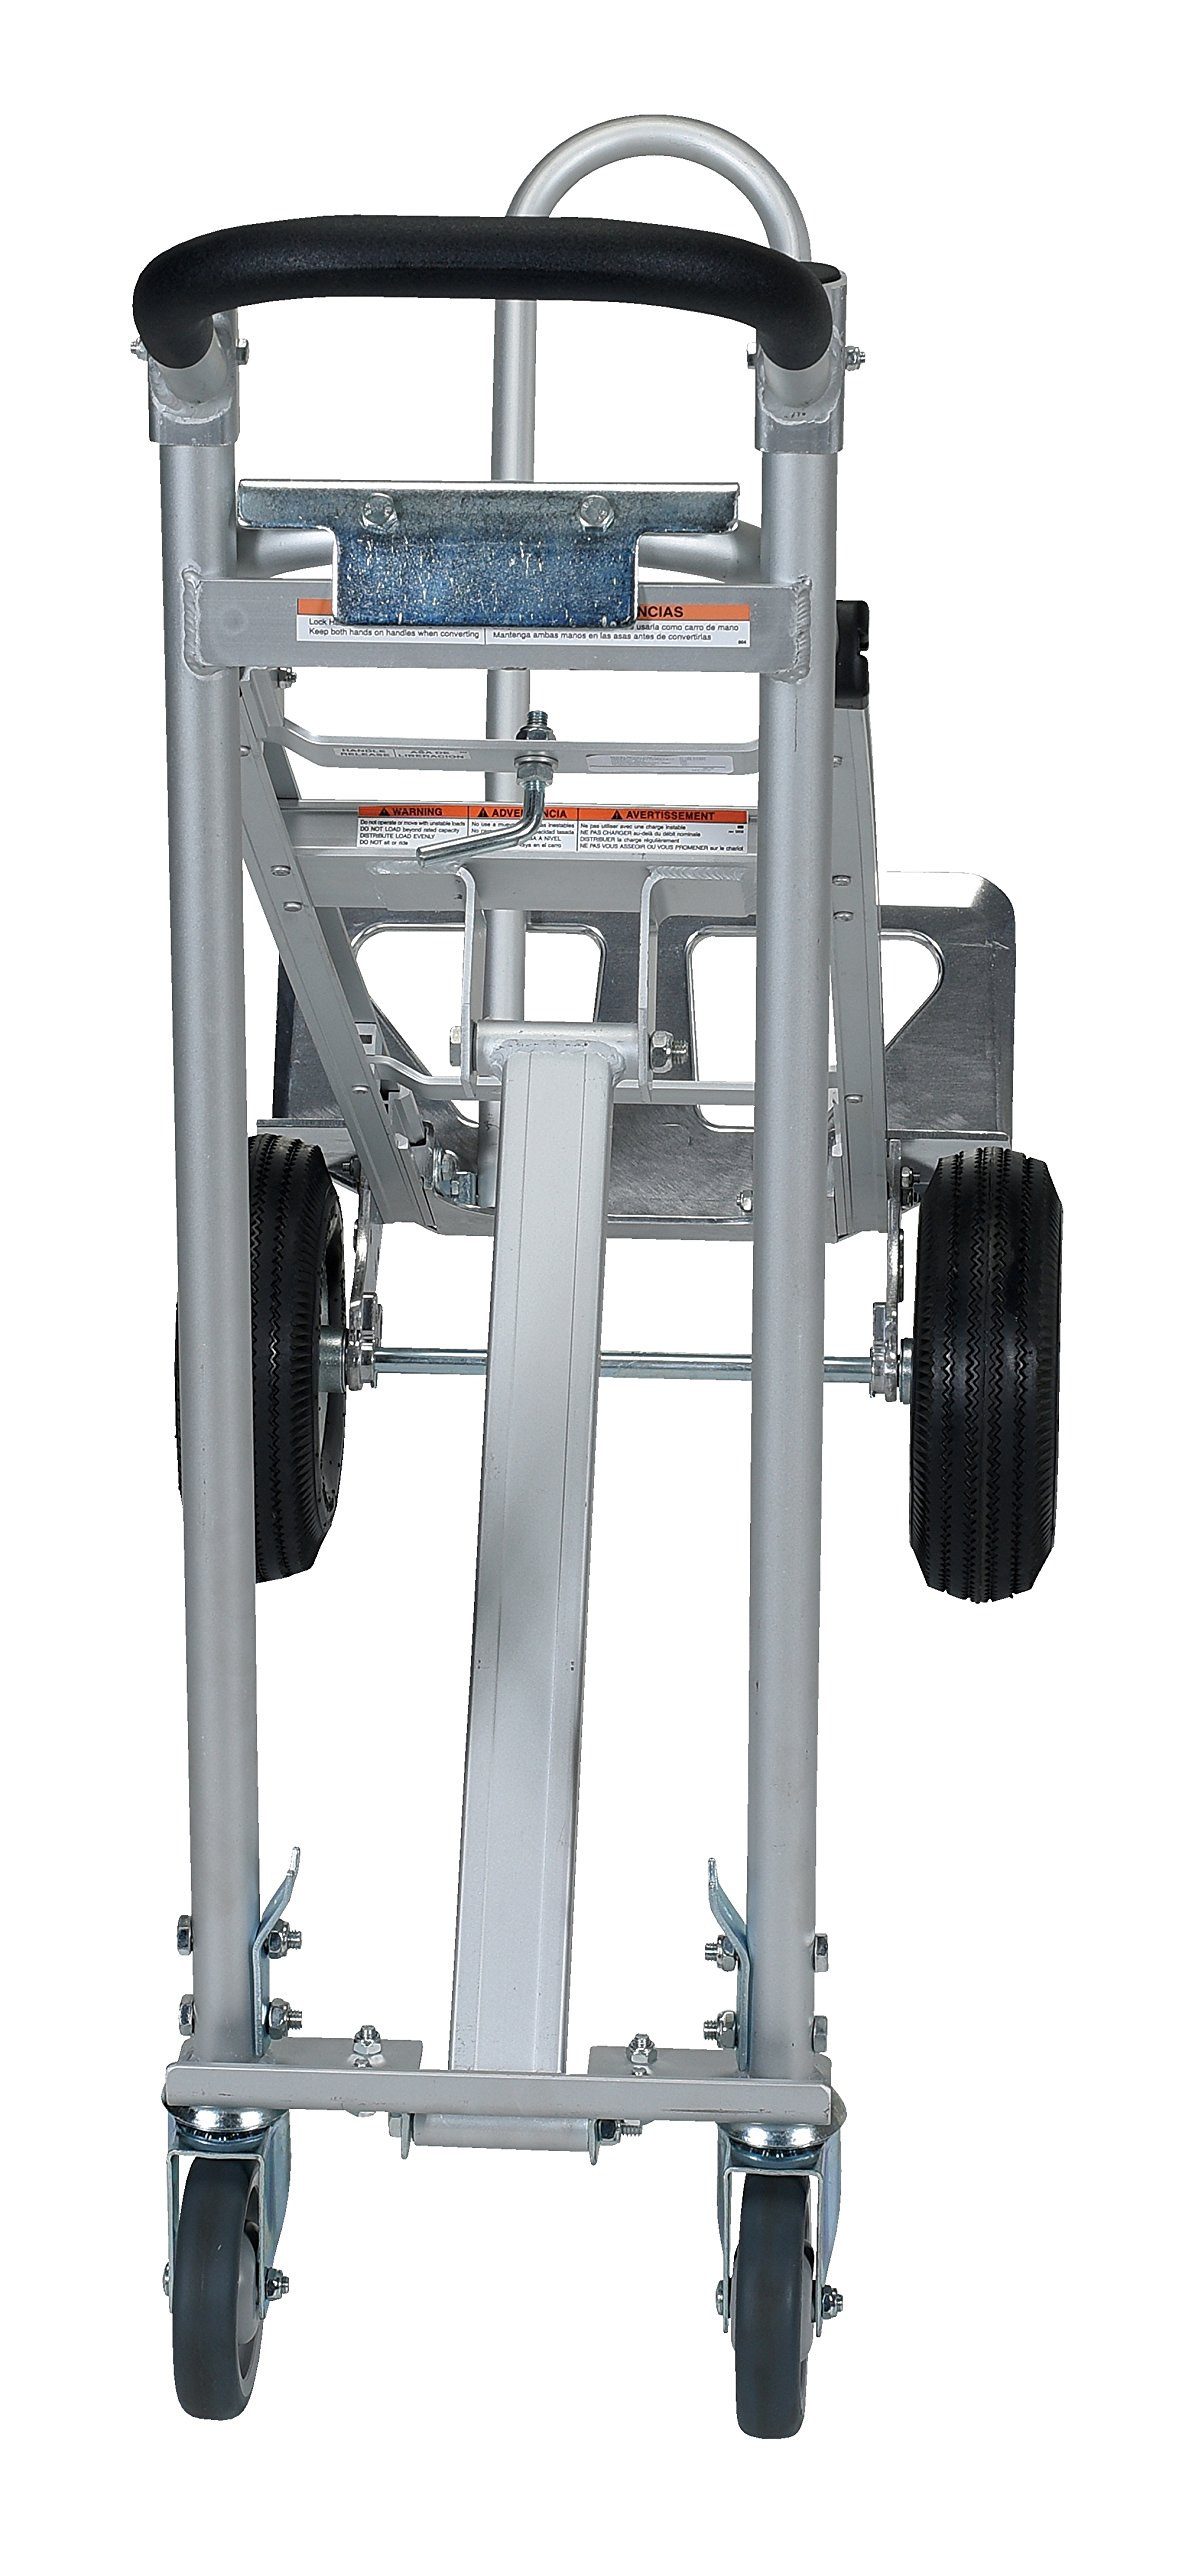 Vestil CAHT-500 Aluminum Convertible Hand Truck with Dual Handles, 500 lb. Load Capacity, 54'' Height, 20'' Width X 20'' Depth